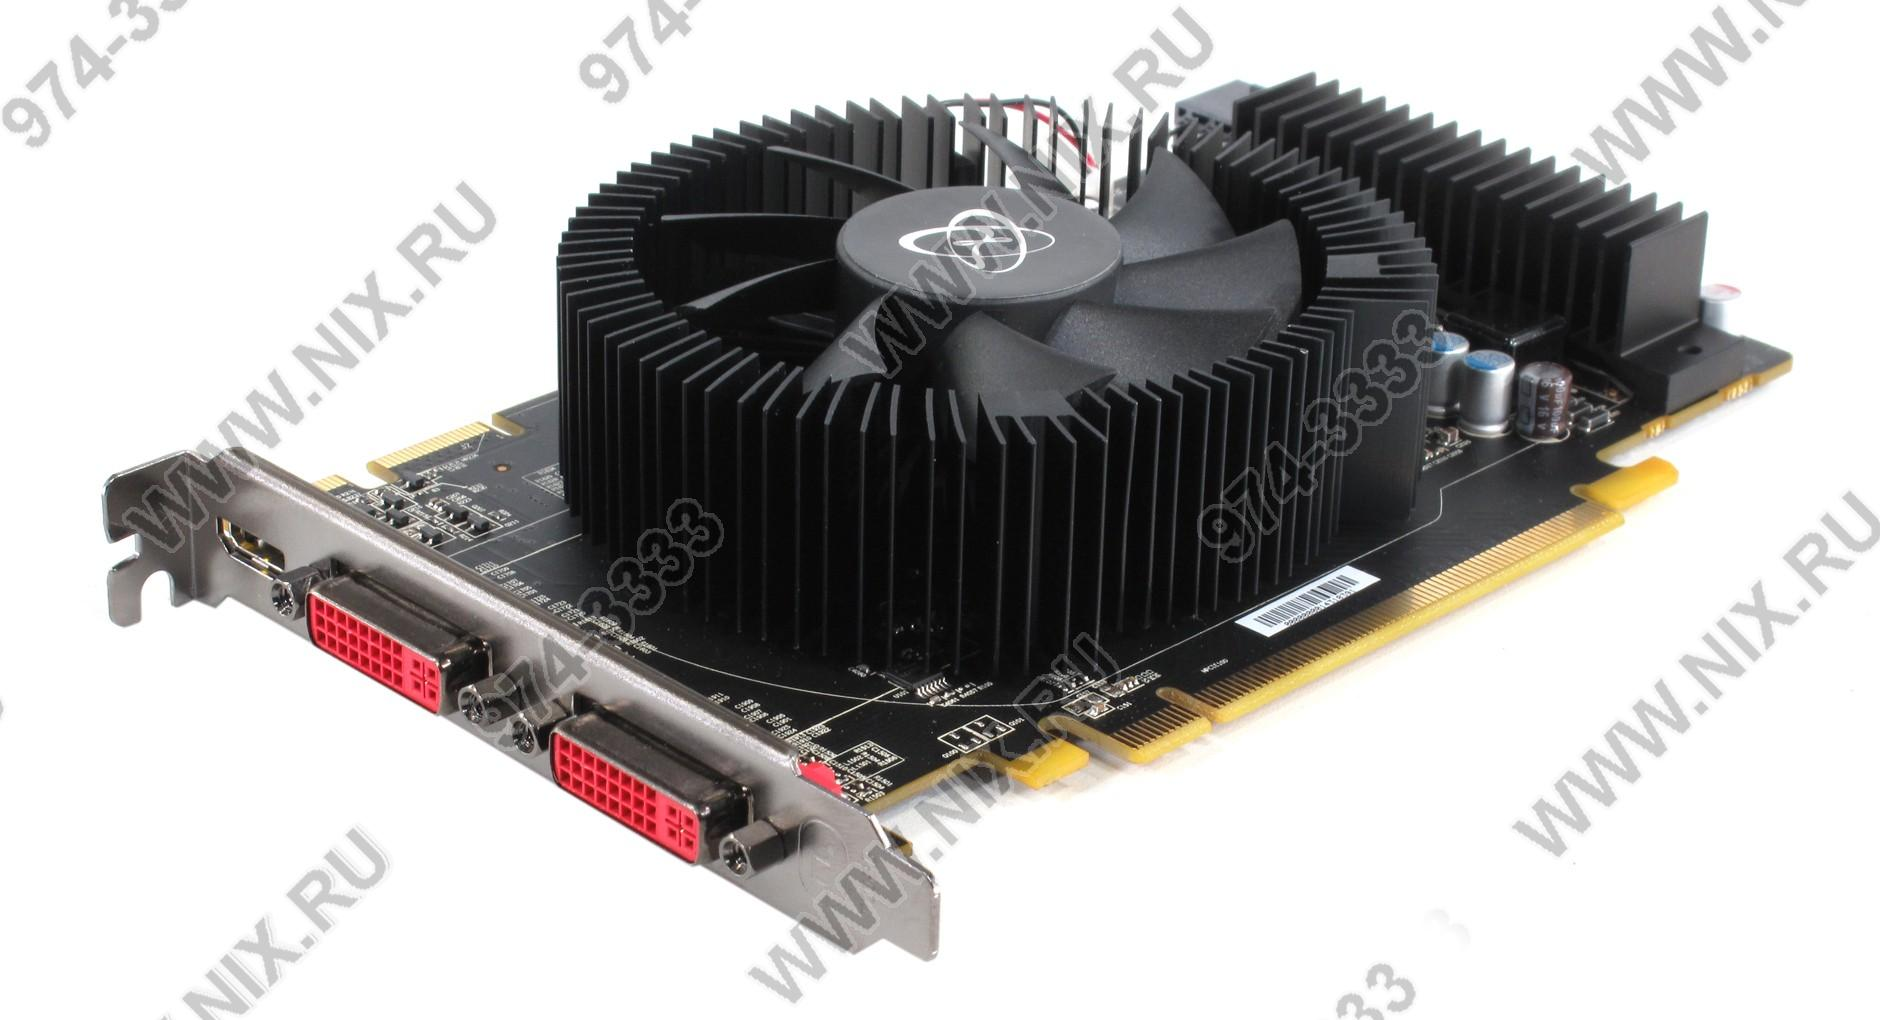 Xfx amd / ati radeon hd 6770 1gb